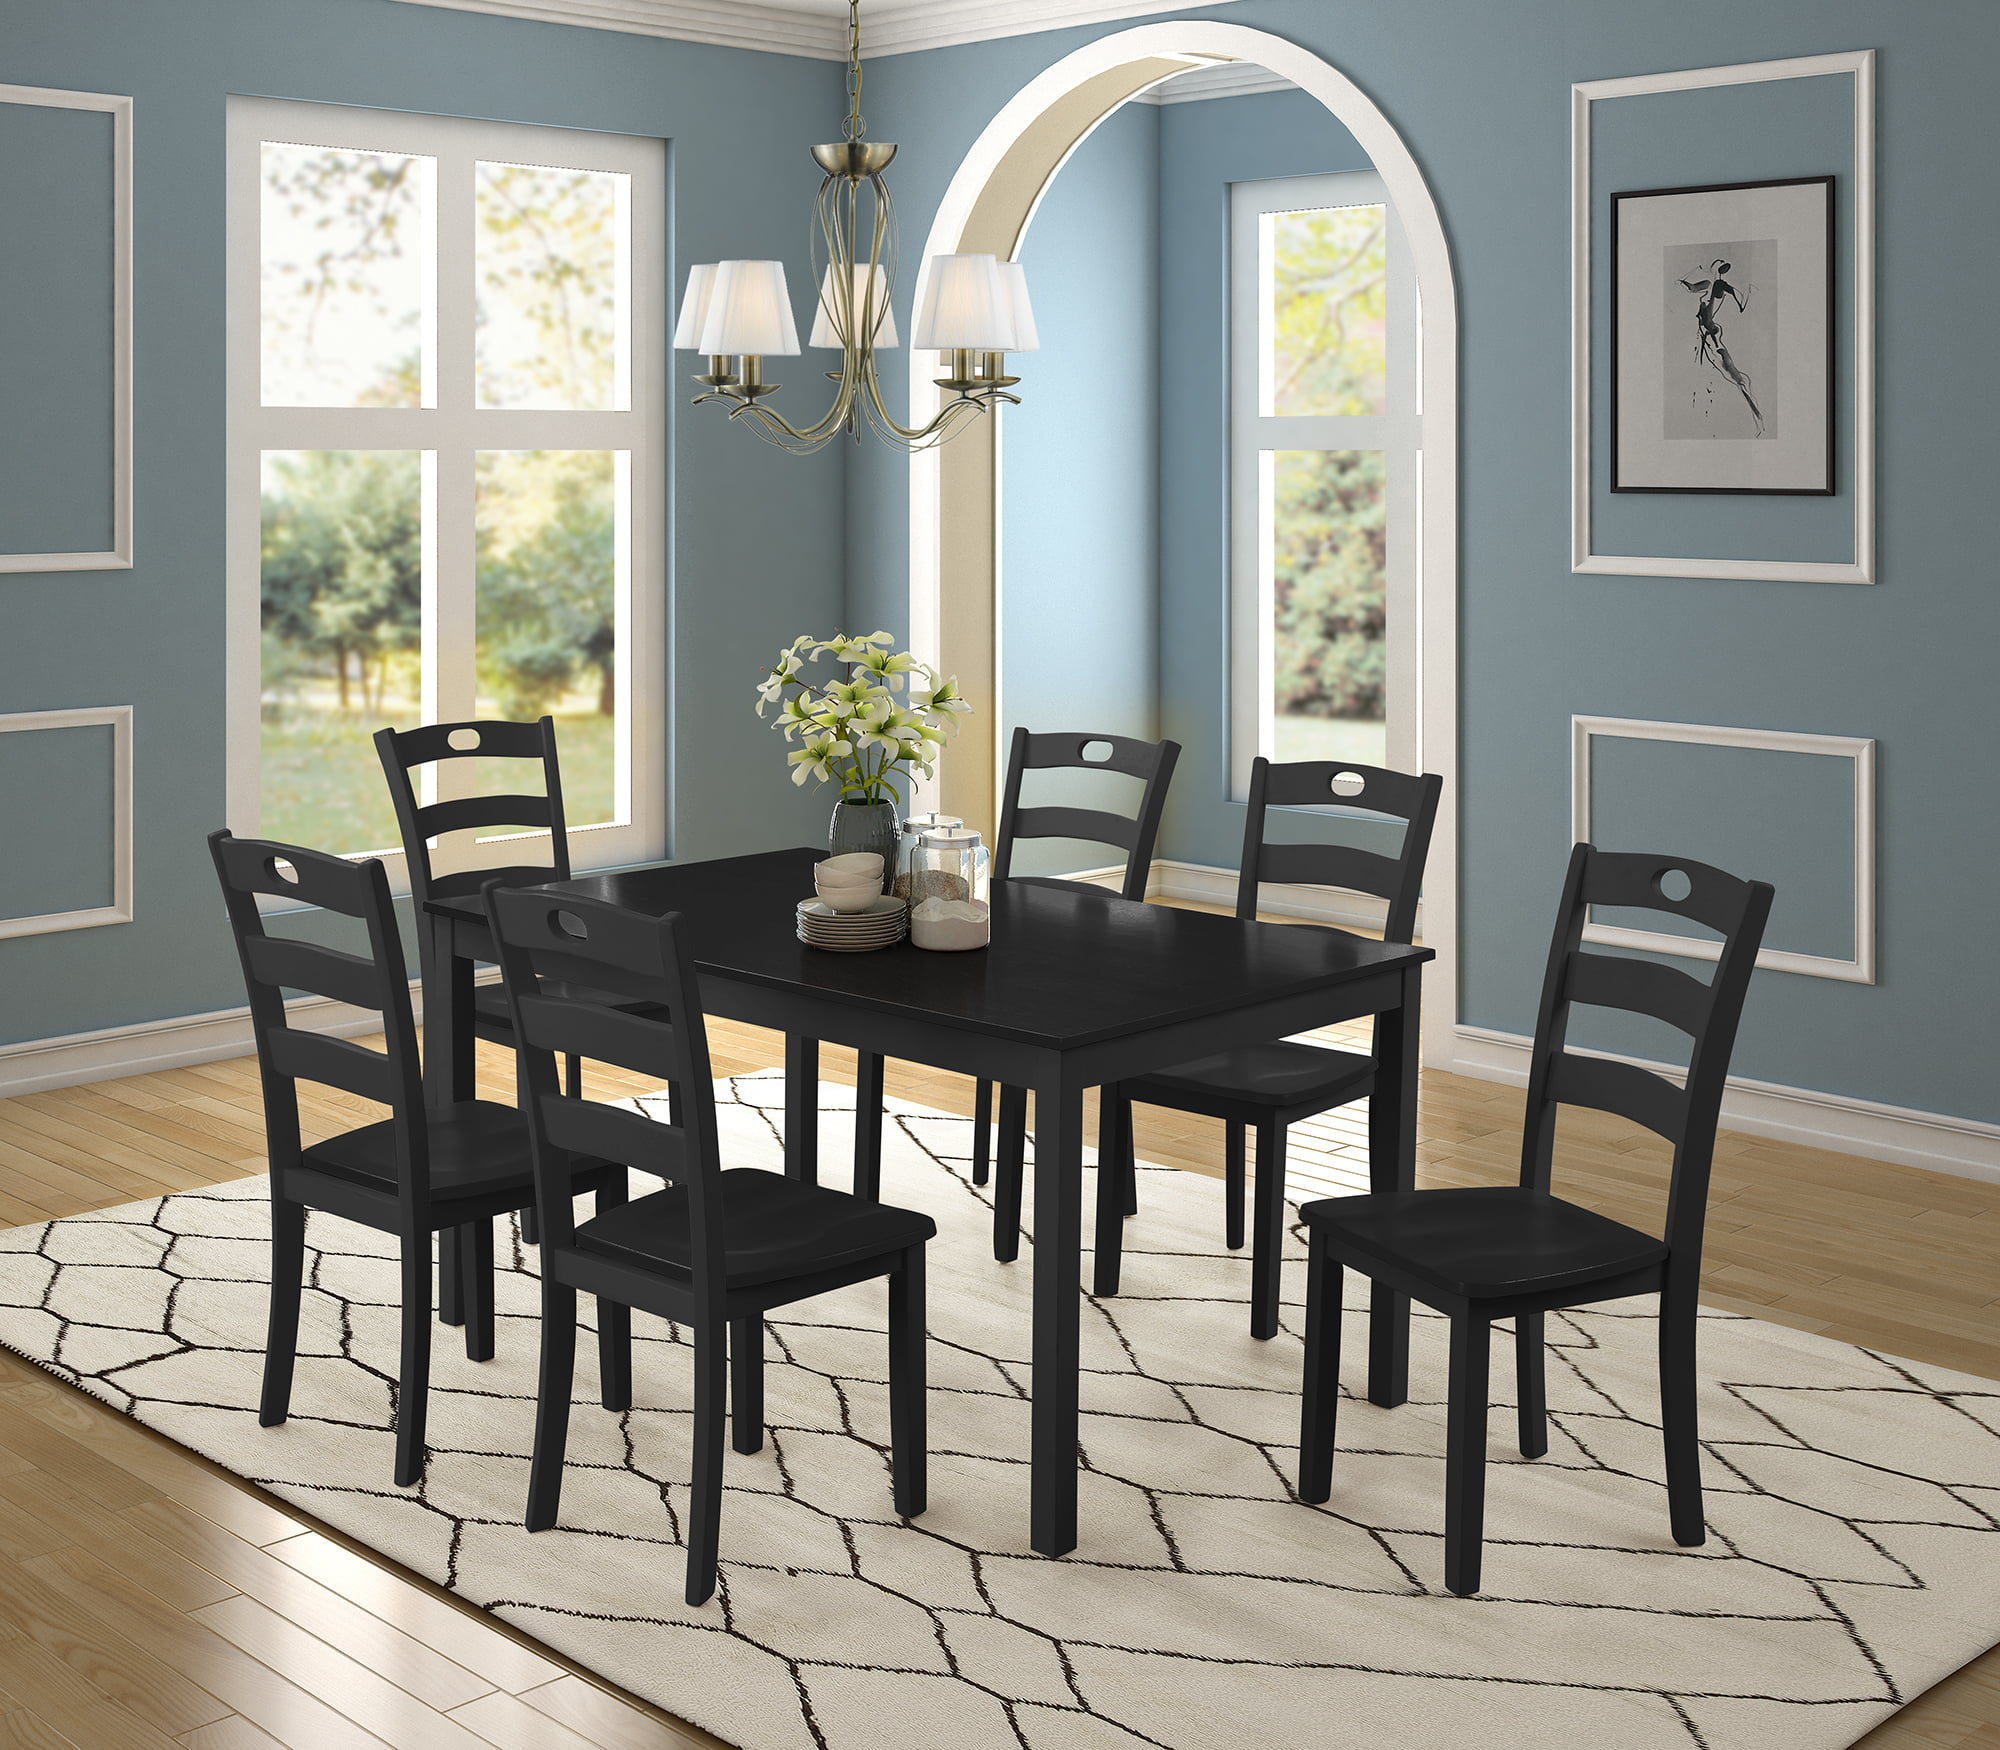 Dining Room Table Set, 7 Piece Dining Table Sets with Dining